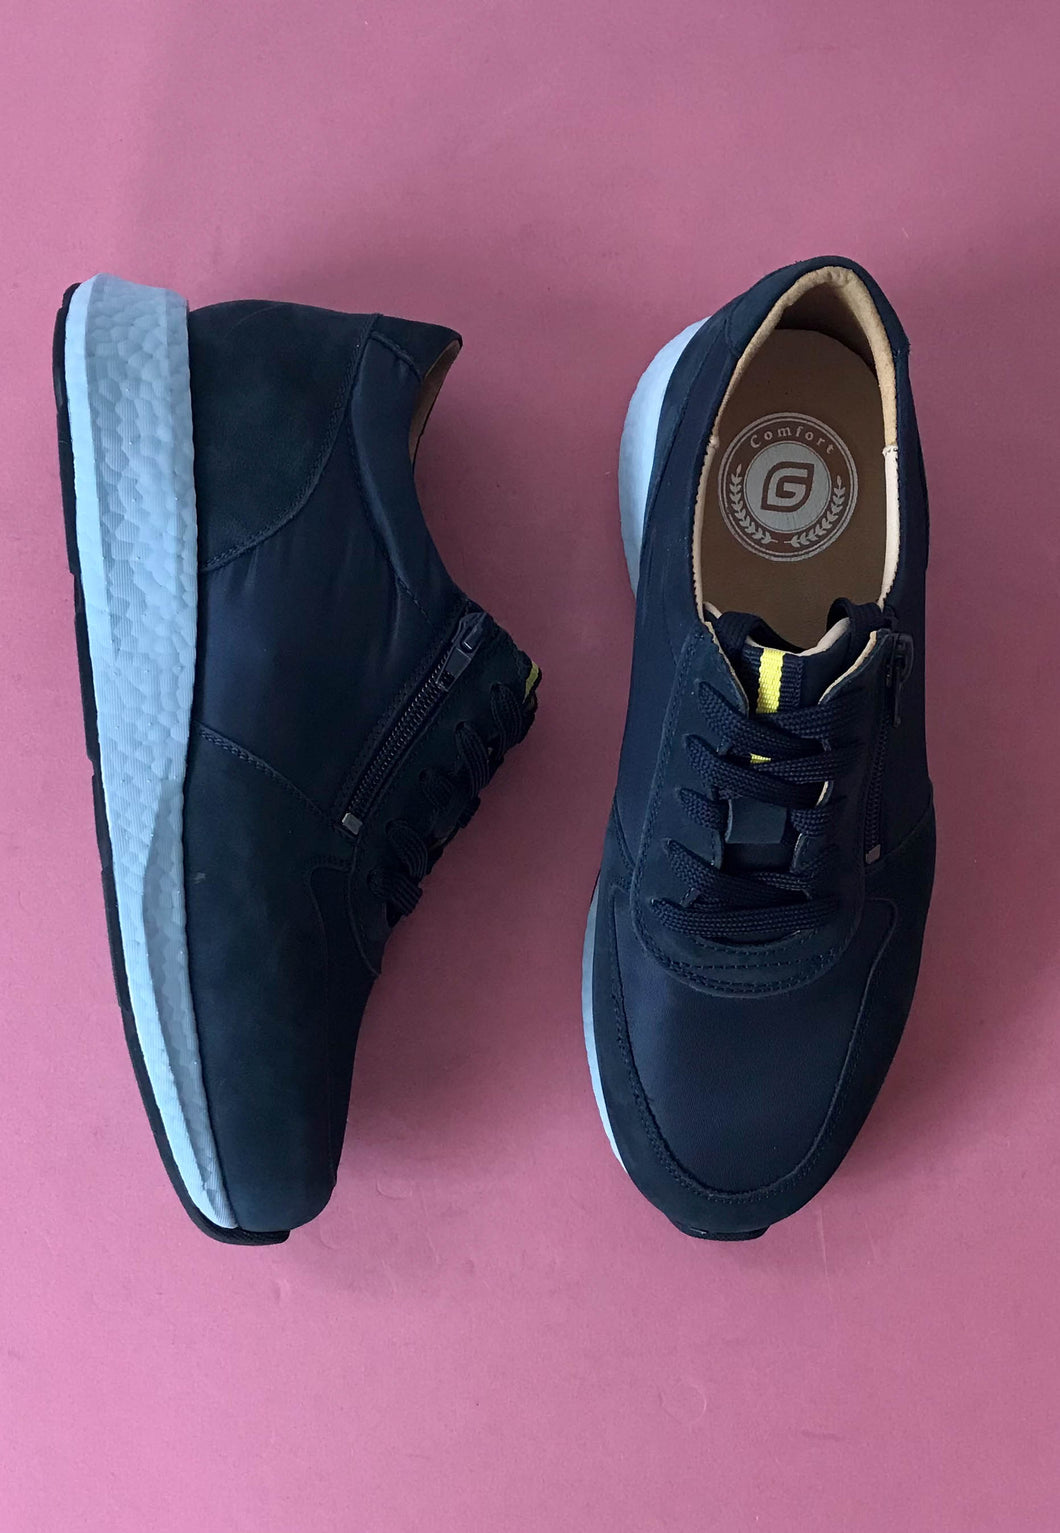 navy shoes G comfort